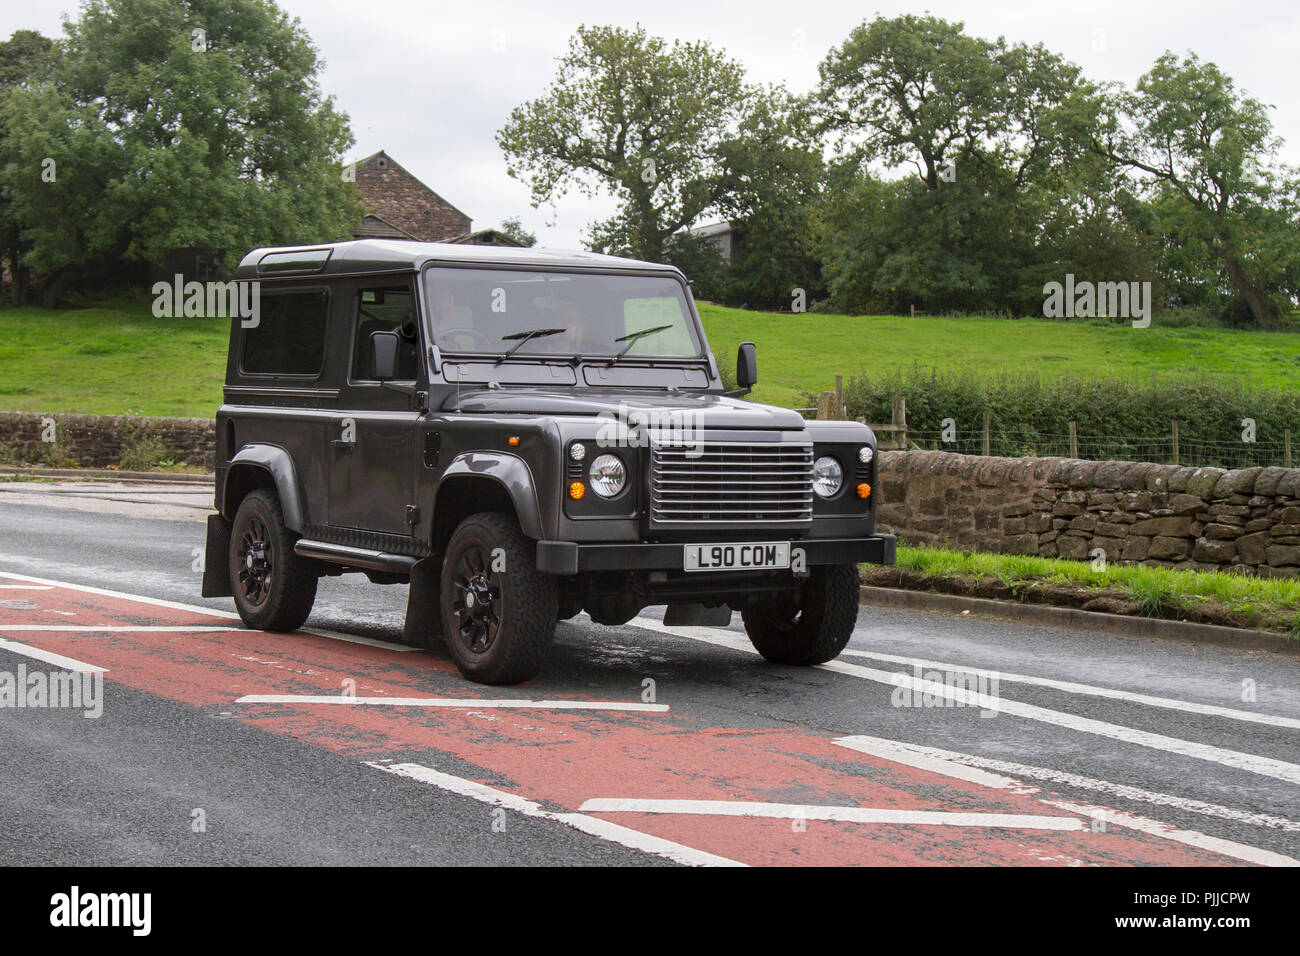 2005 Land Rover Classic, vintage, veteran, cars of yesteryear, restored collectibles at Hoghton Tower Class Cars Rally, UK - Stock Image